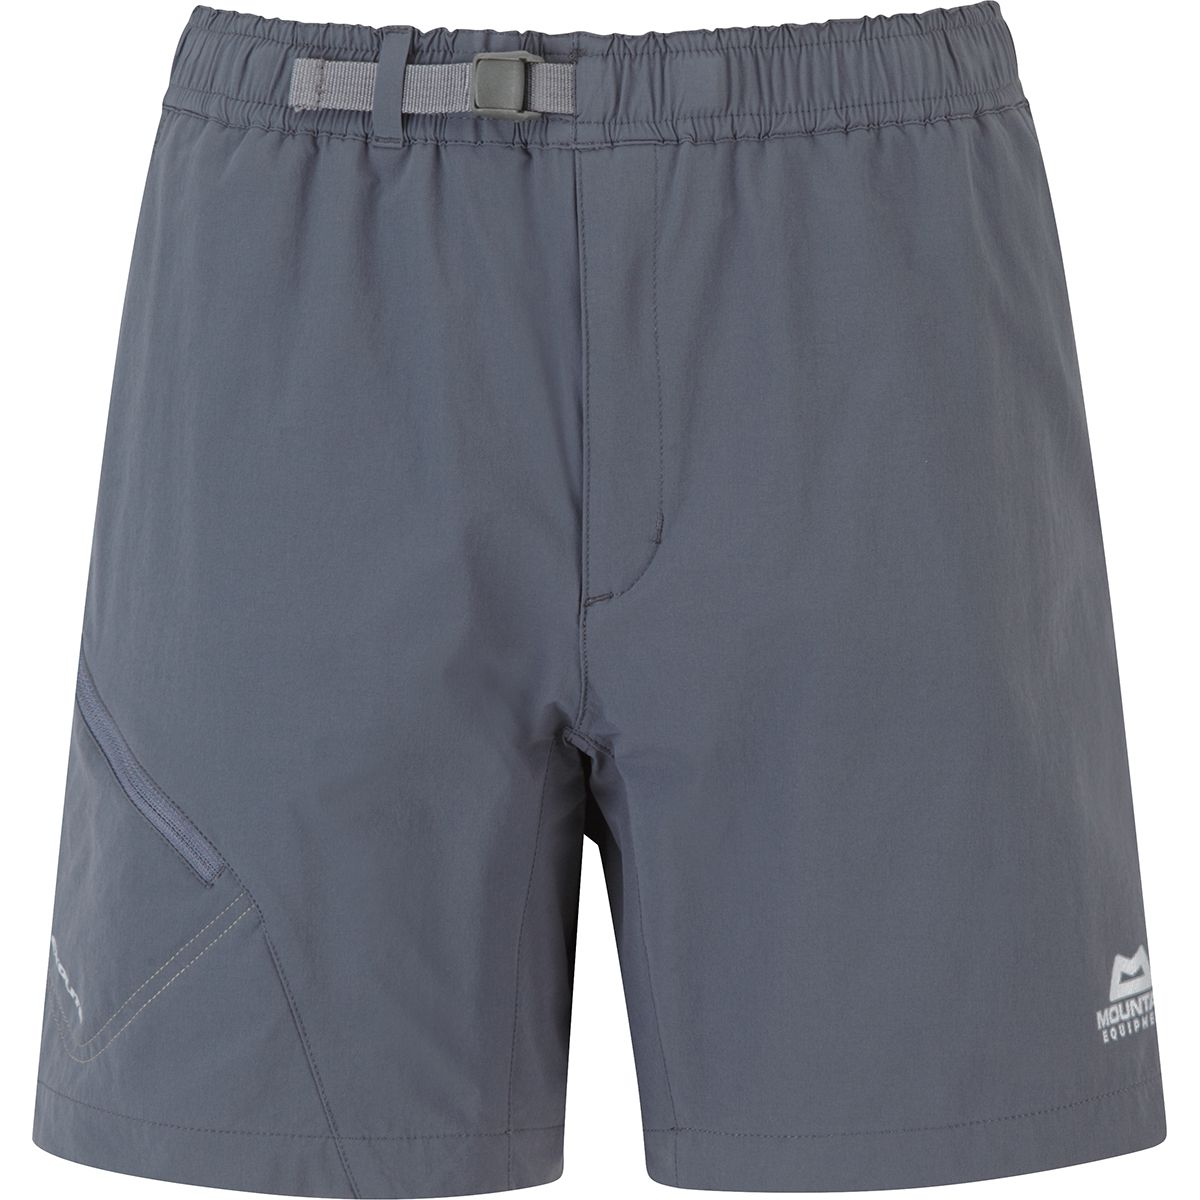 Mountain Equipment Damen Comici Trail Shorts (Größe S, Schwarz) | Kurze Hosen > Damen